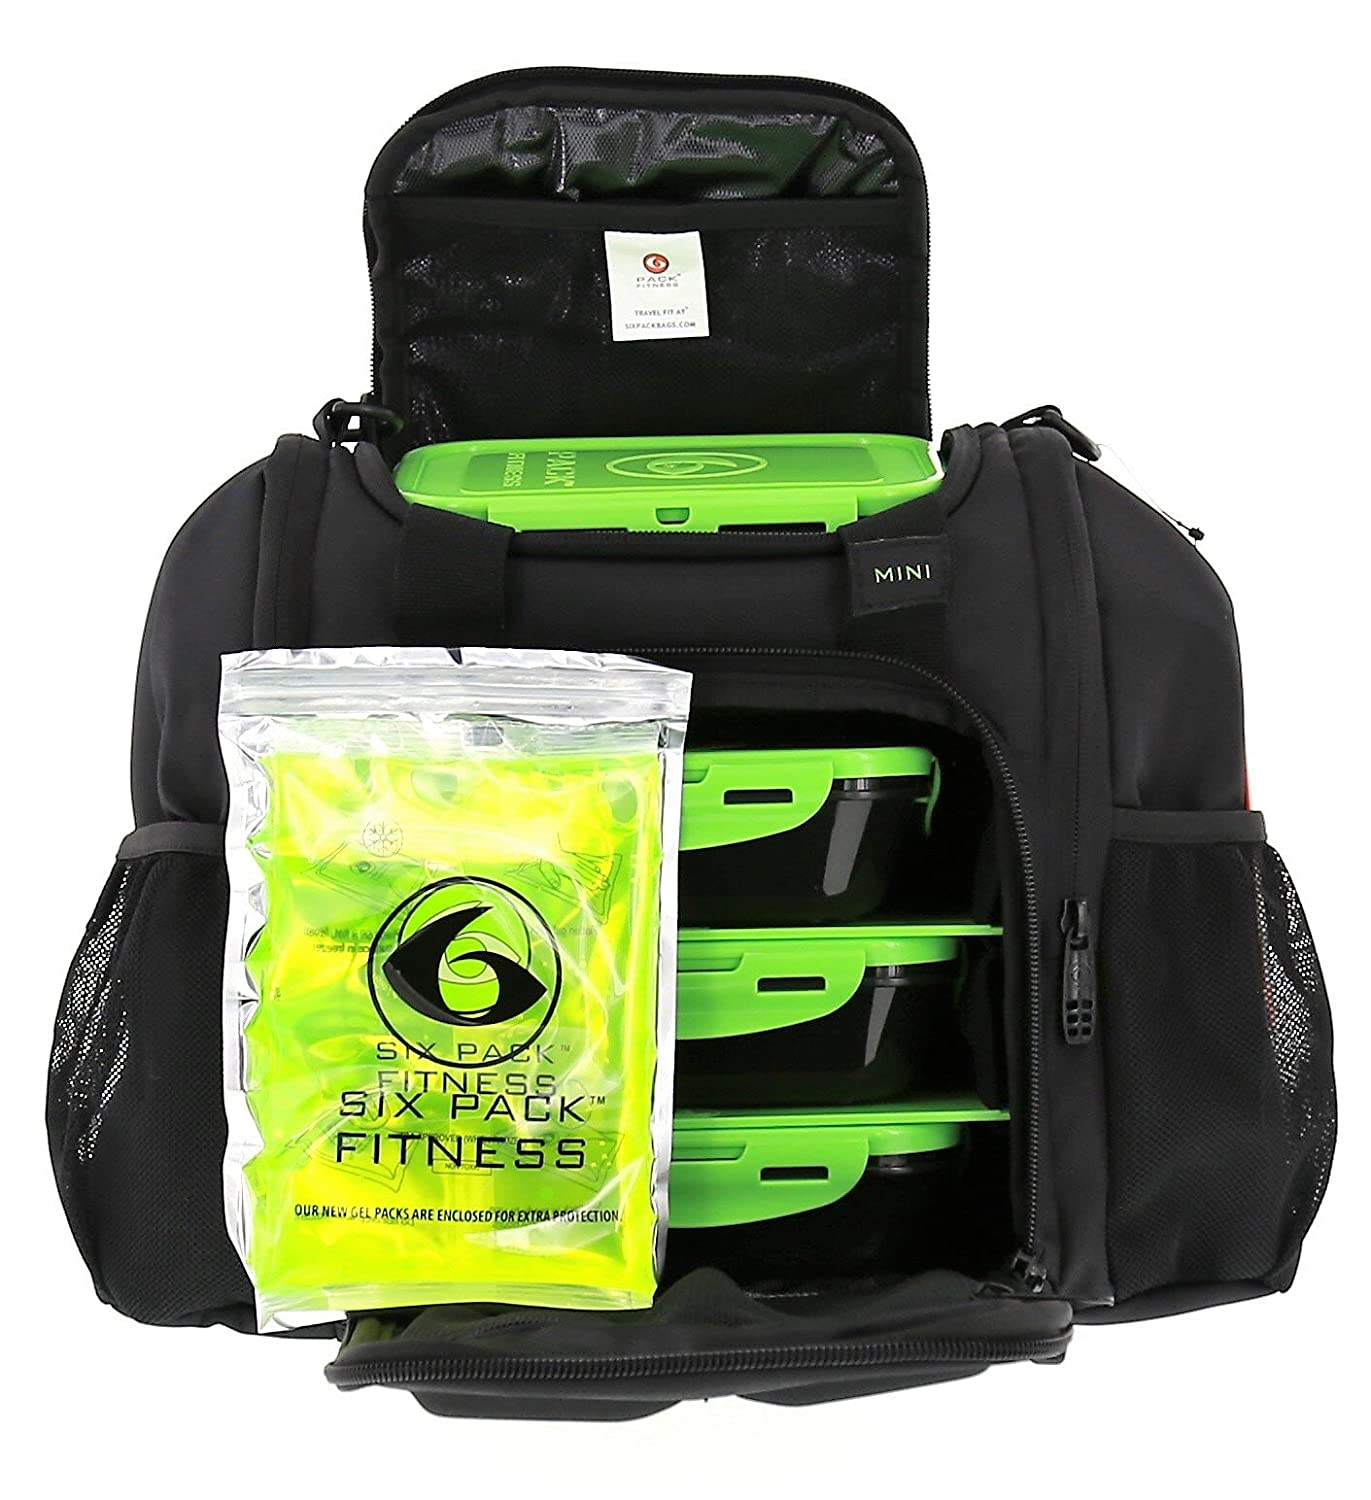 6 Pack Fitness Bag Mini Innovator With ZogoSportz Cyclone Shaker